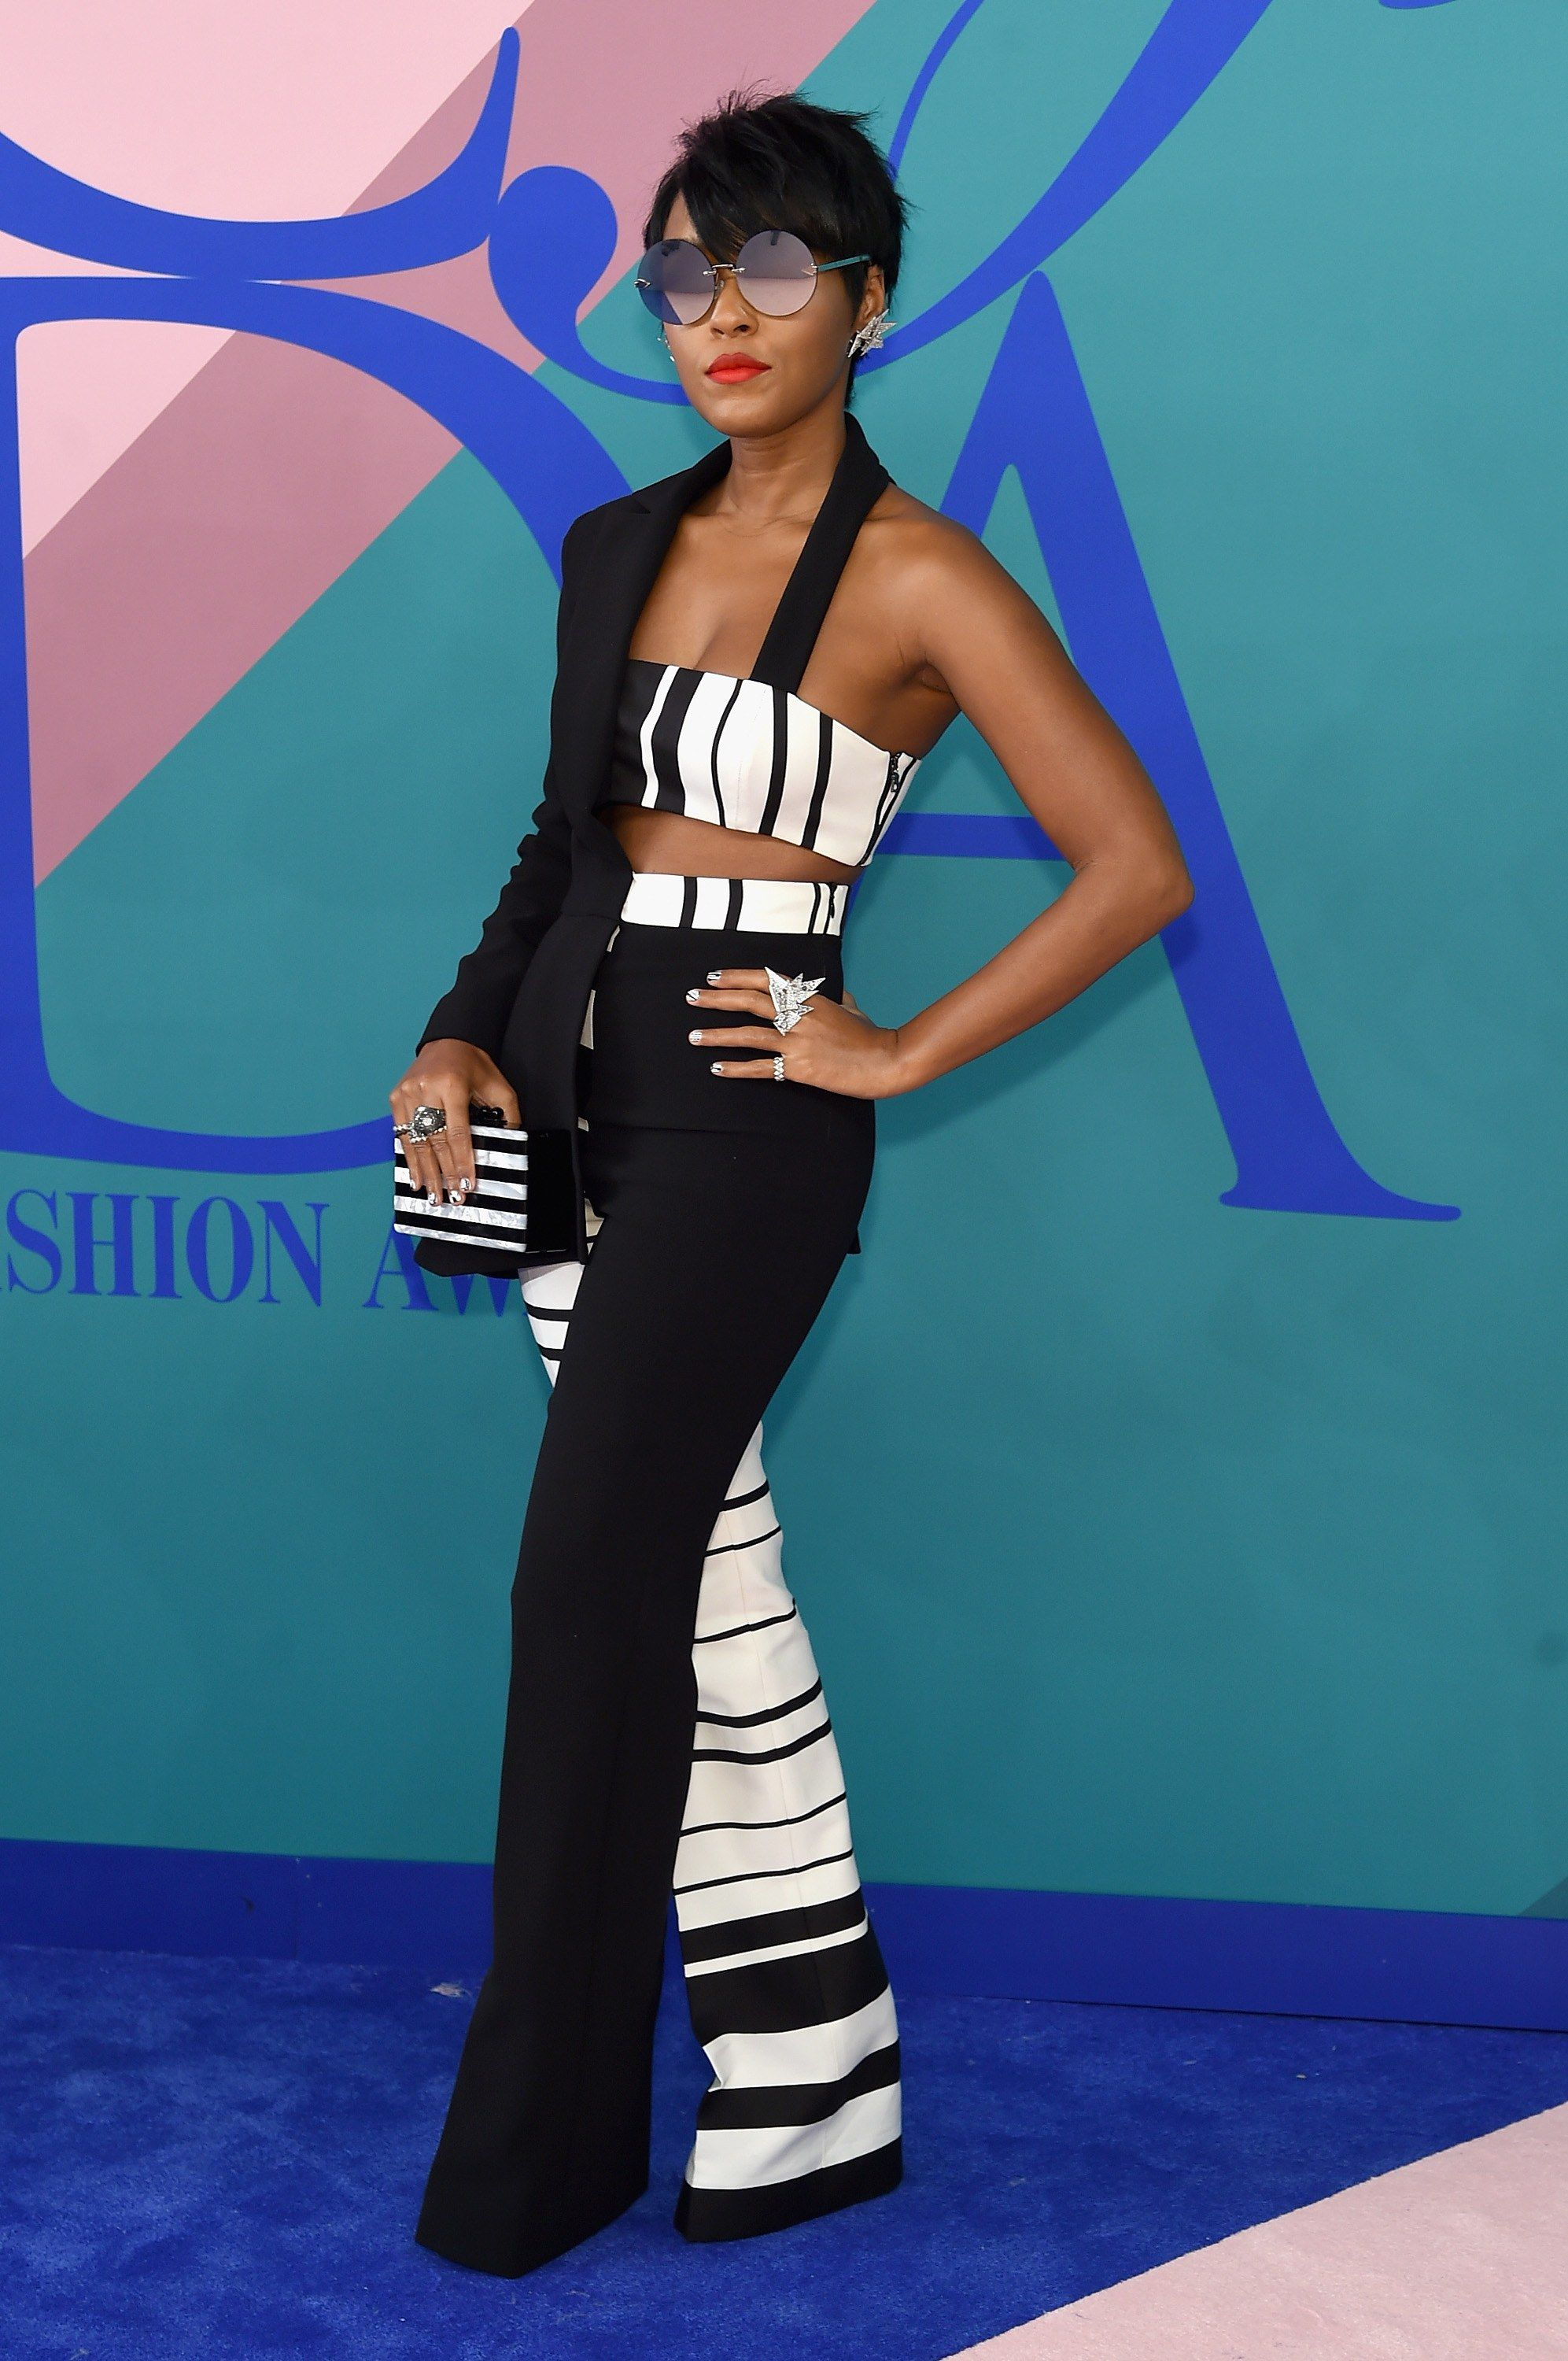 Cfda awards fashionulive from the red carpet fashion